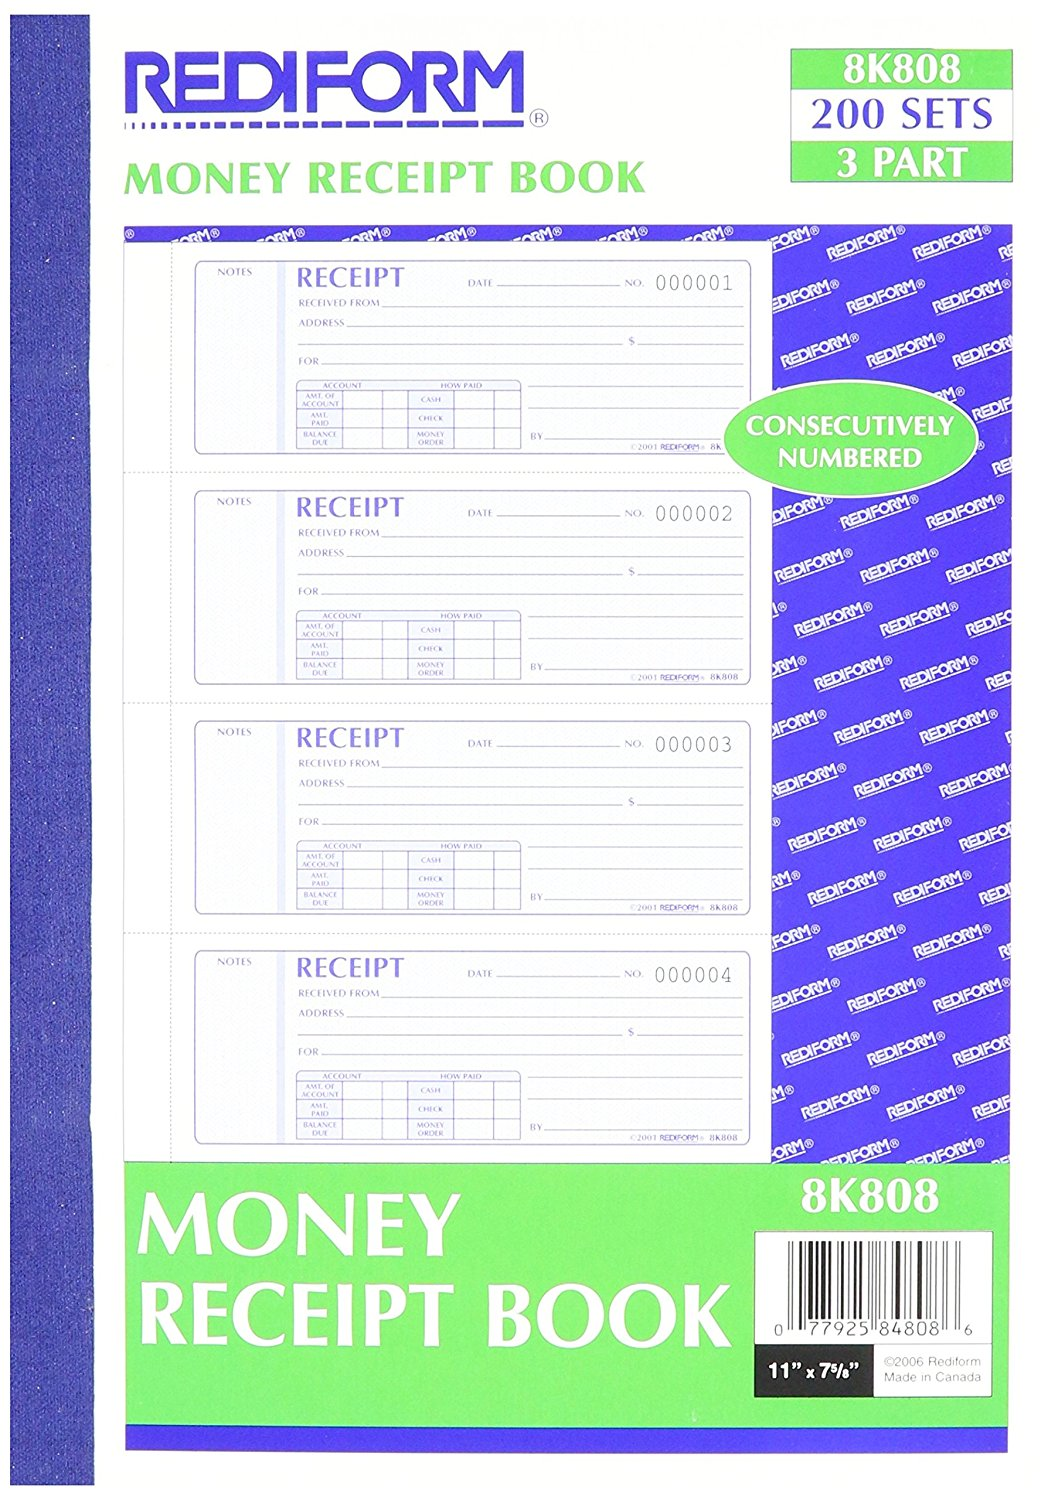 Money Receipt Books with Carbons, Triplicate, 4 Forms per Page, 200 Sets per Book (8K808), 200 triplicates,... by